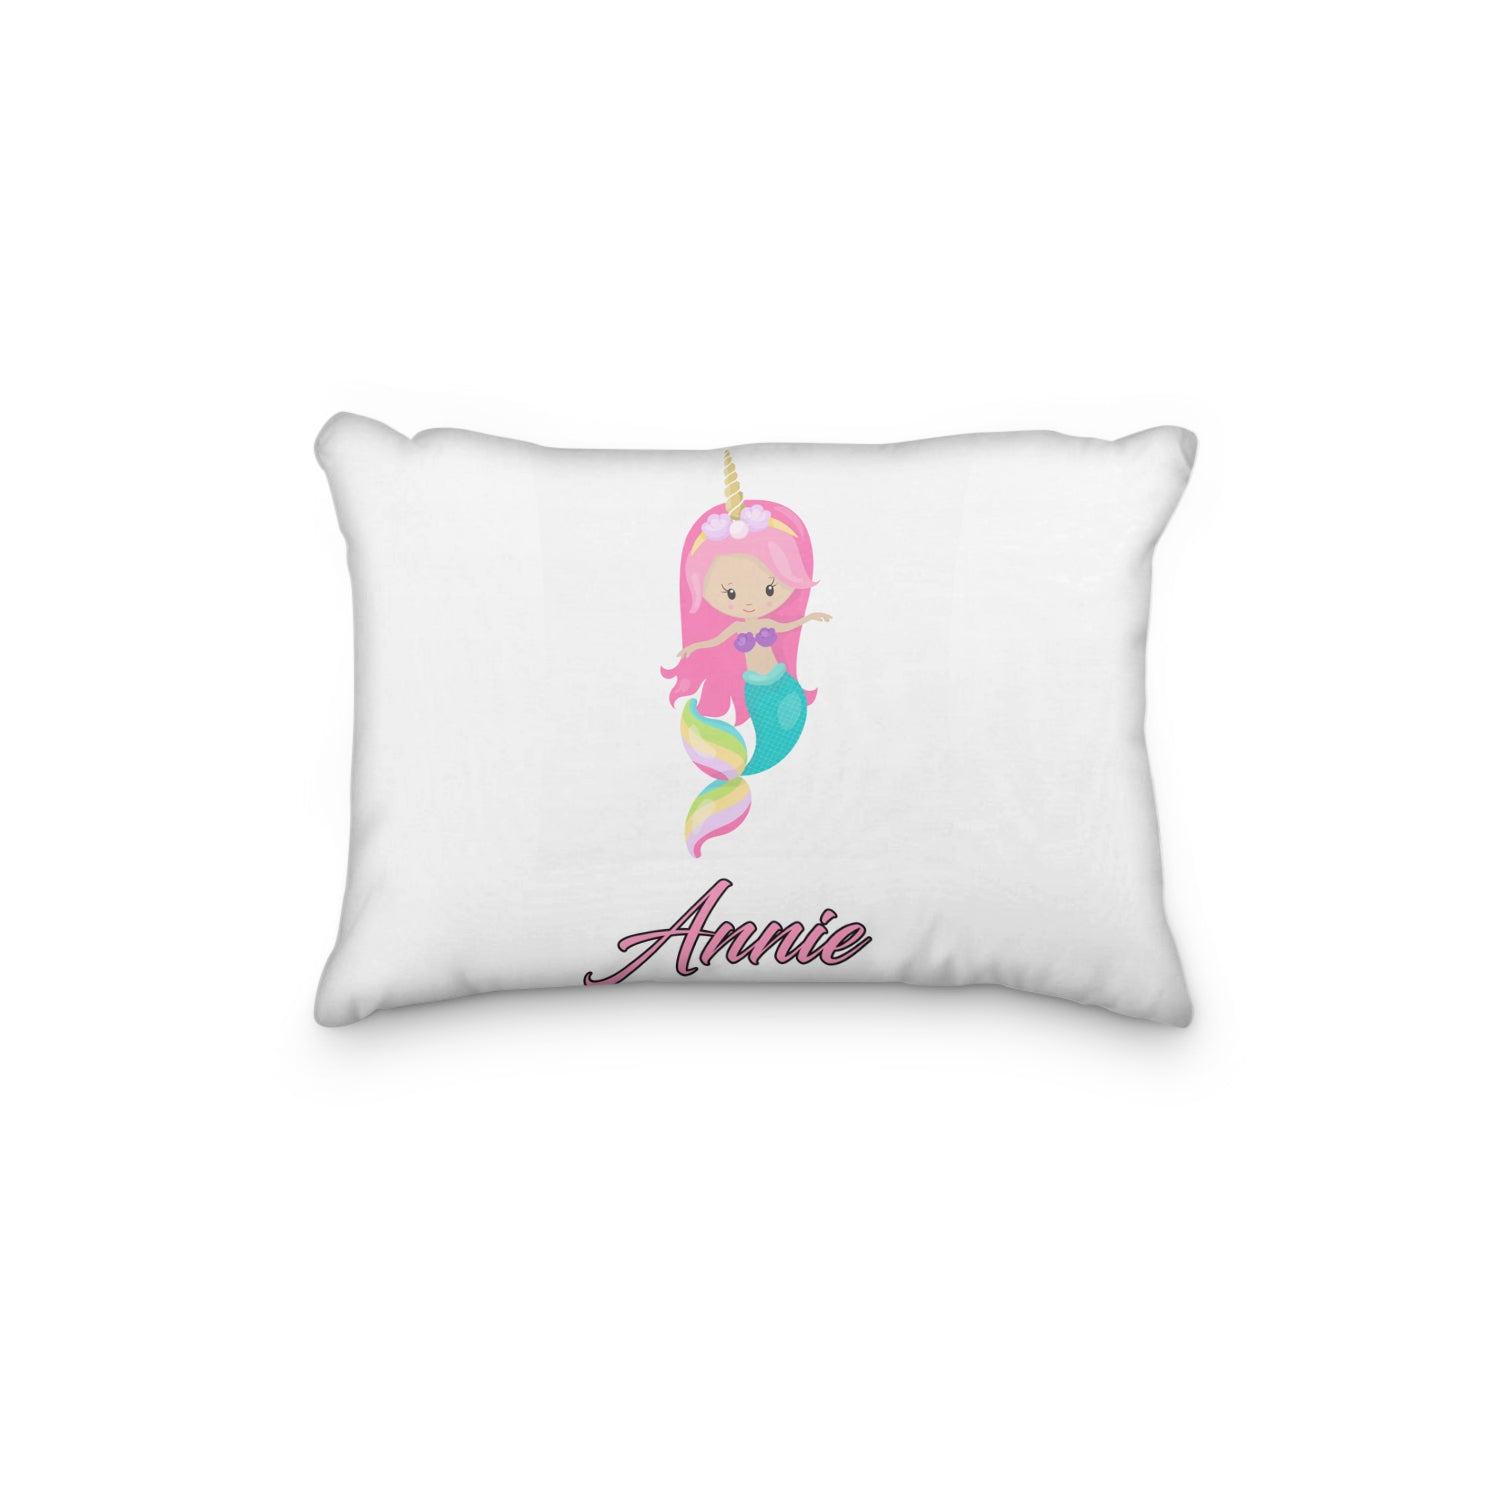 Mermaid Unicorn Rainbow Pink Personalized Pillowcase - Incandescently